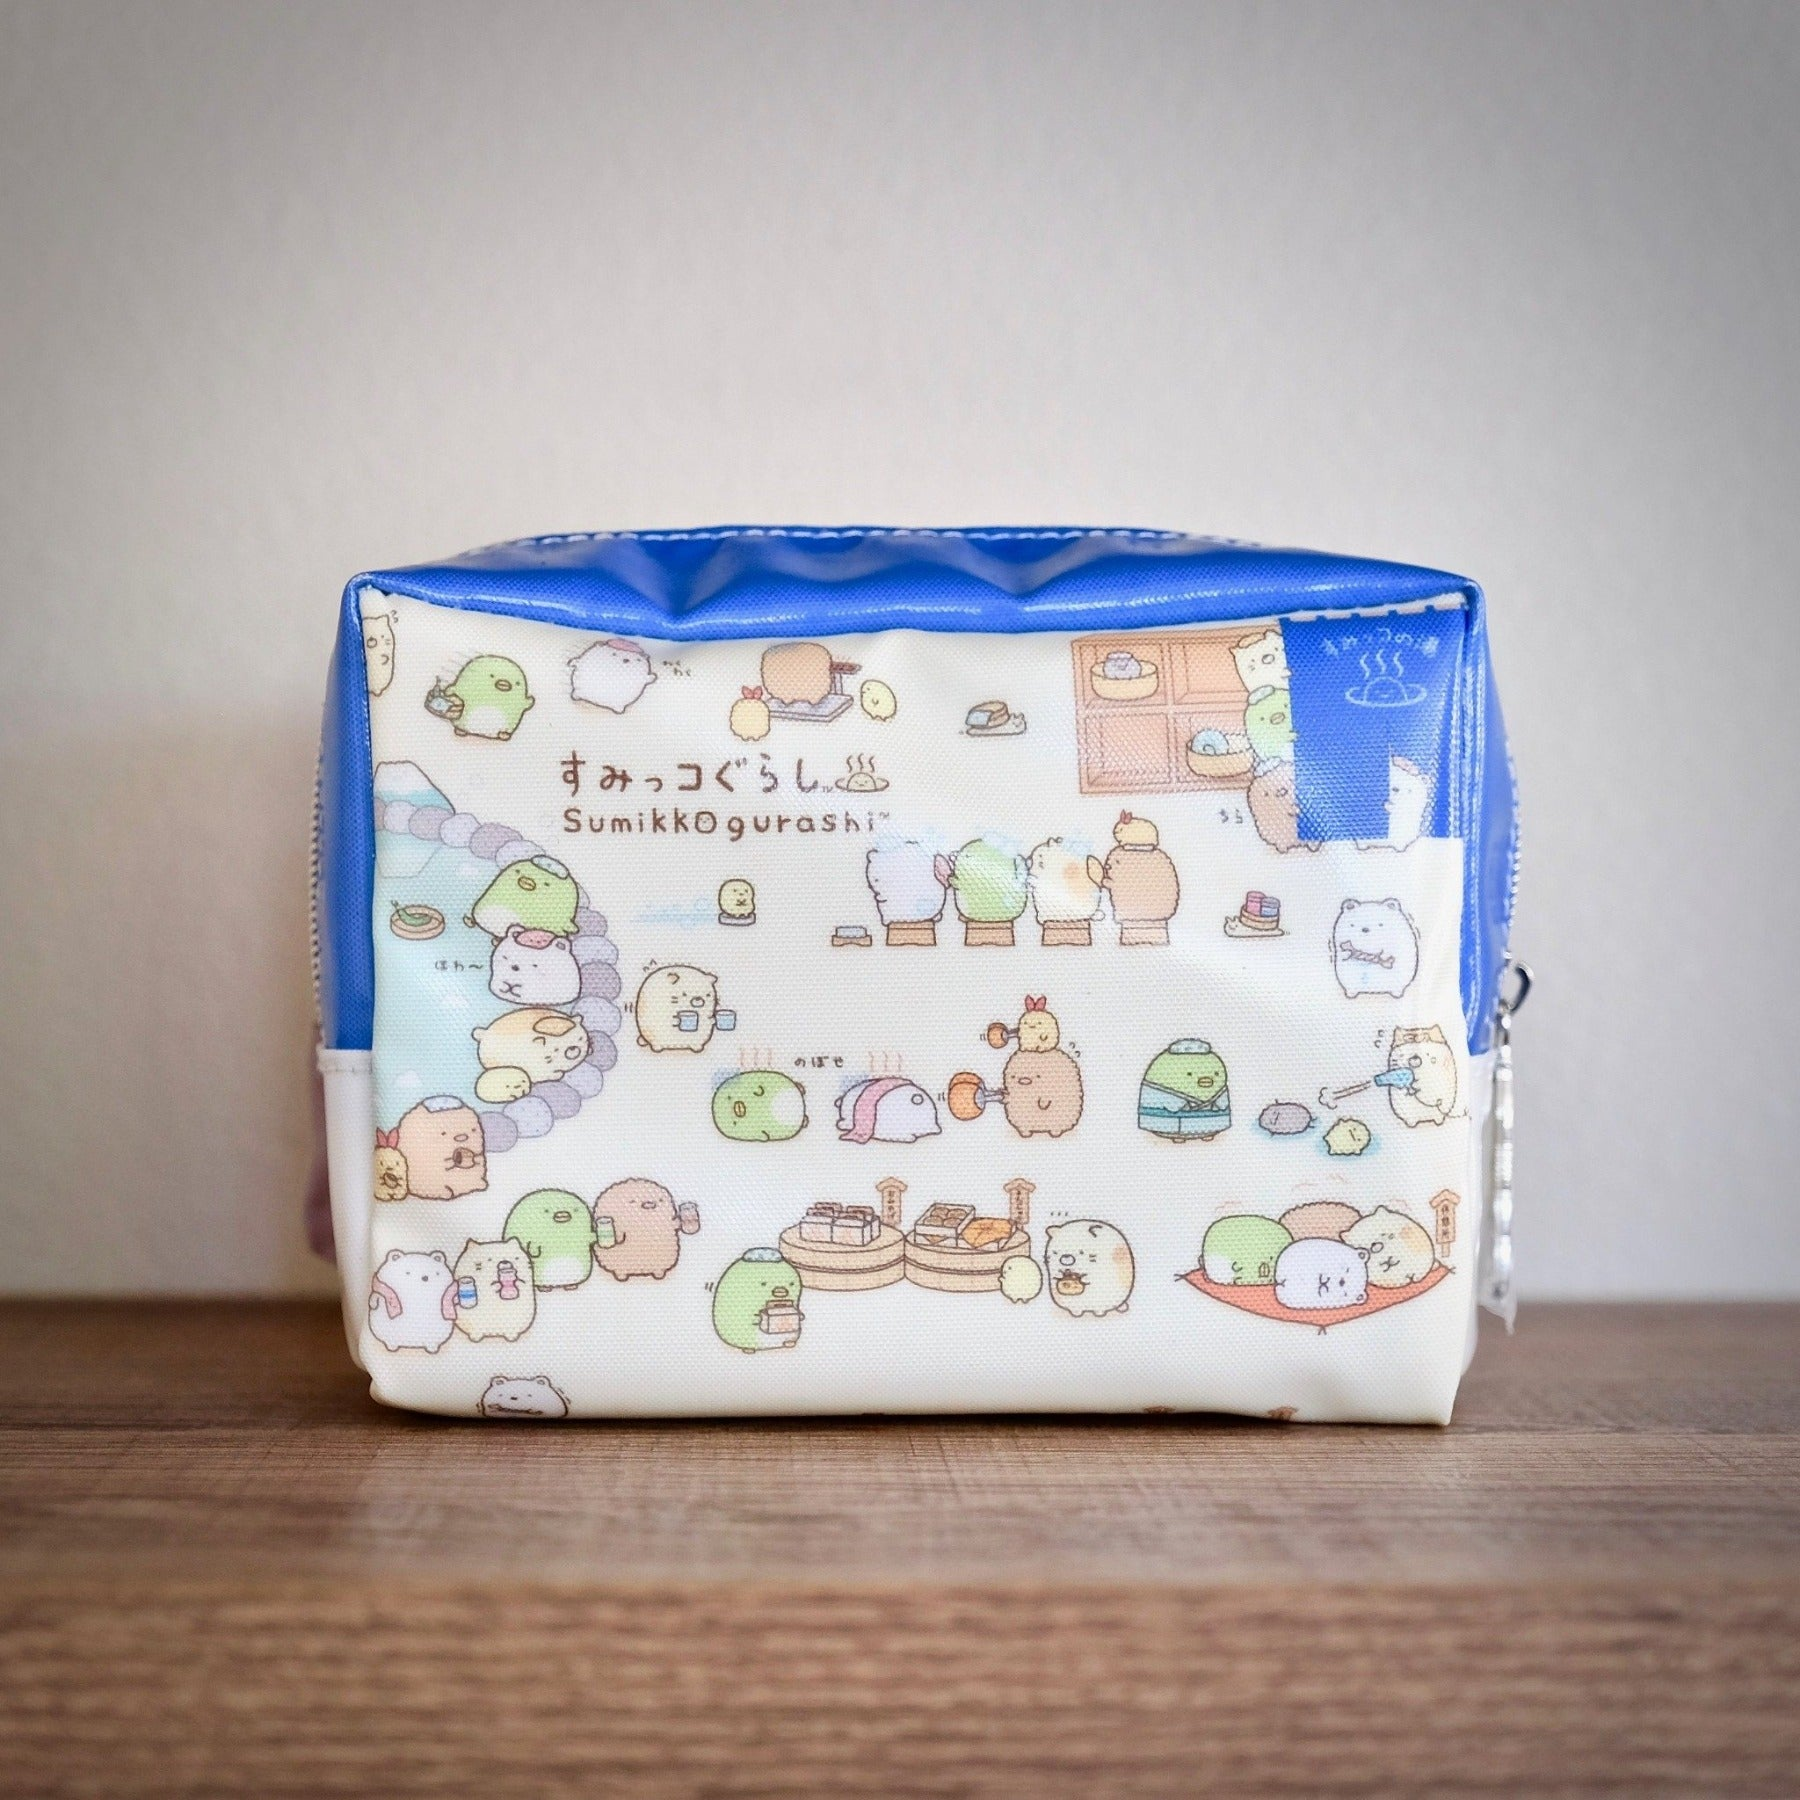 Sumikko Gurashi Hot Springs zippered pouch front view